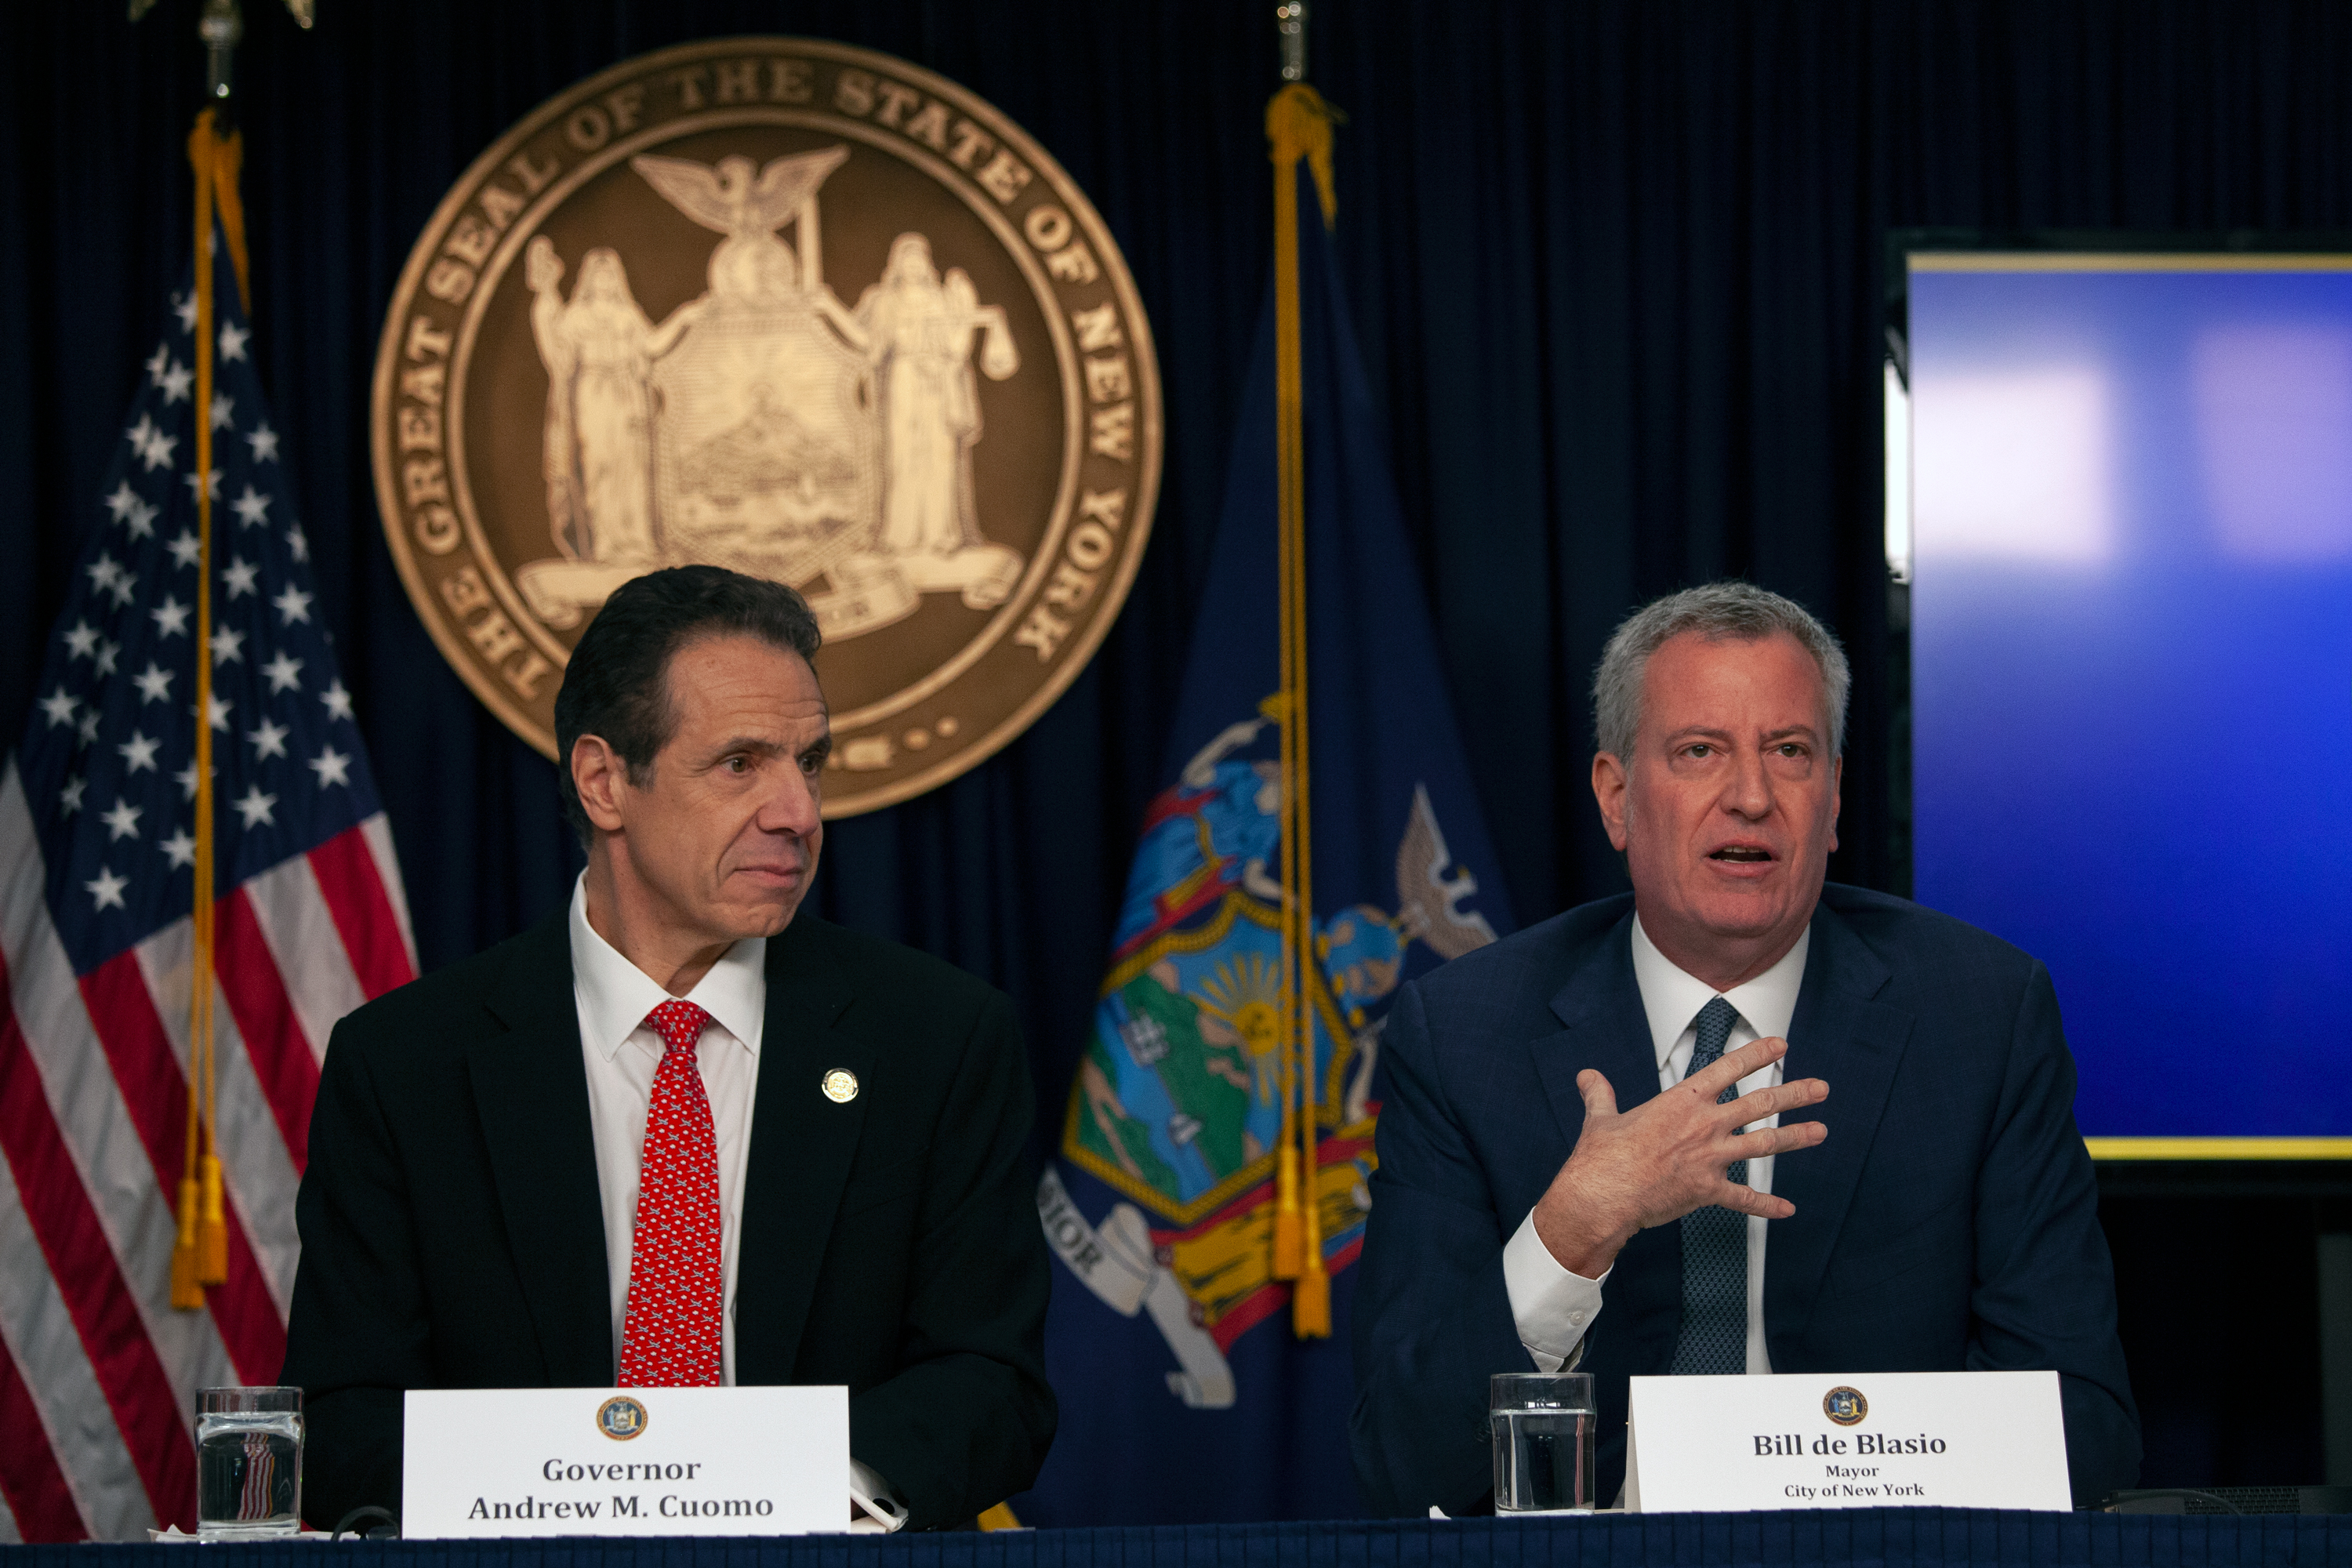 Mayor Bill de Blasio and Governor Andrew Cuomo hold a joint news conference at the start of the coronavirus outbreak, March 2, 2020.